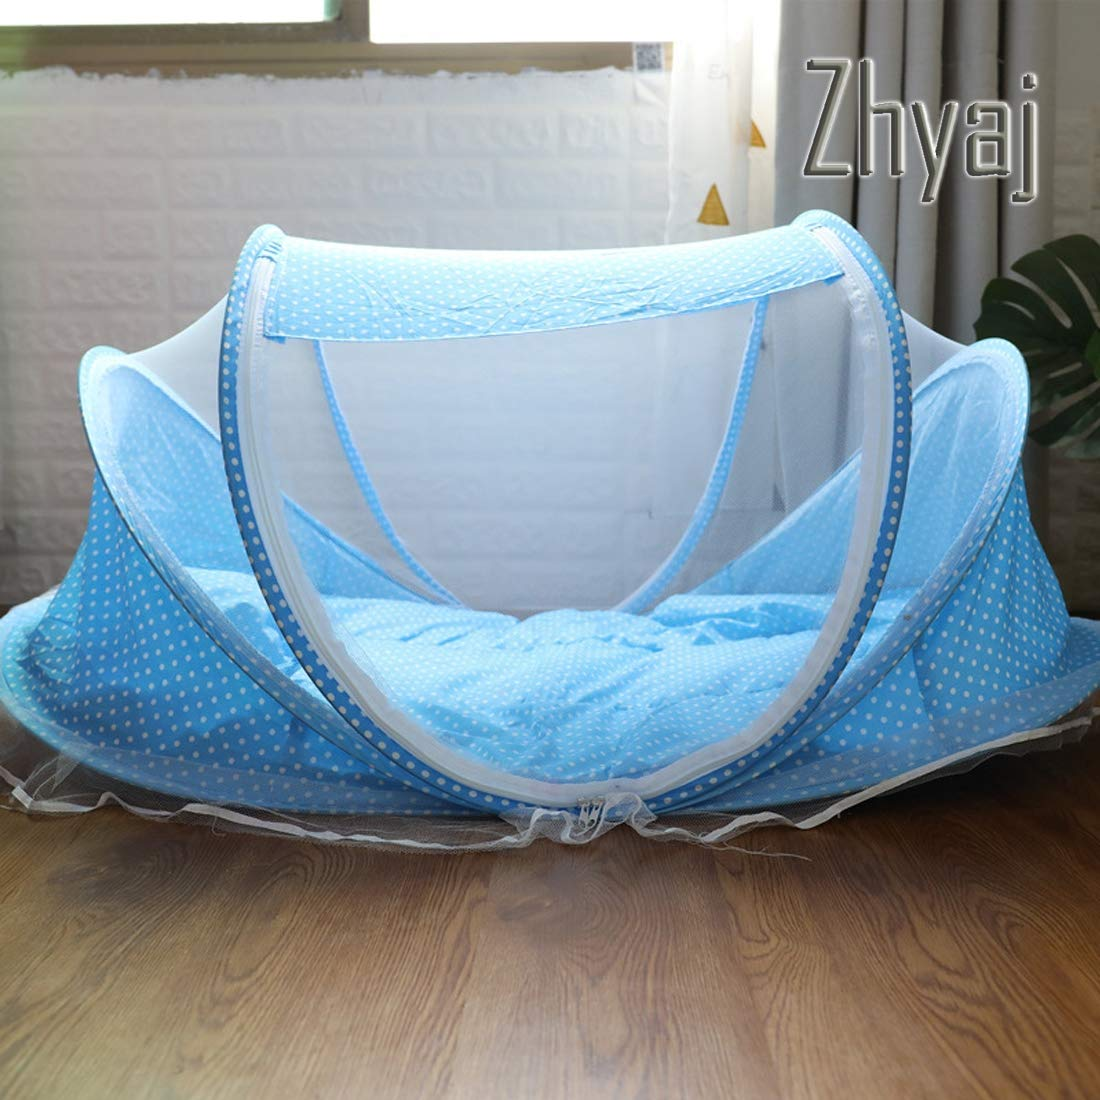 B Zhyaj Outdoor Dog Kennel, Cat Nest Foldable Portable Travel Summer Isolation Insect Dog Tent Fully Enclosed Dog Bed Ventilation Breathable Dog House,A